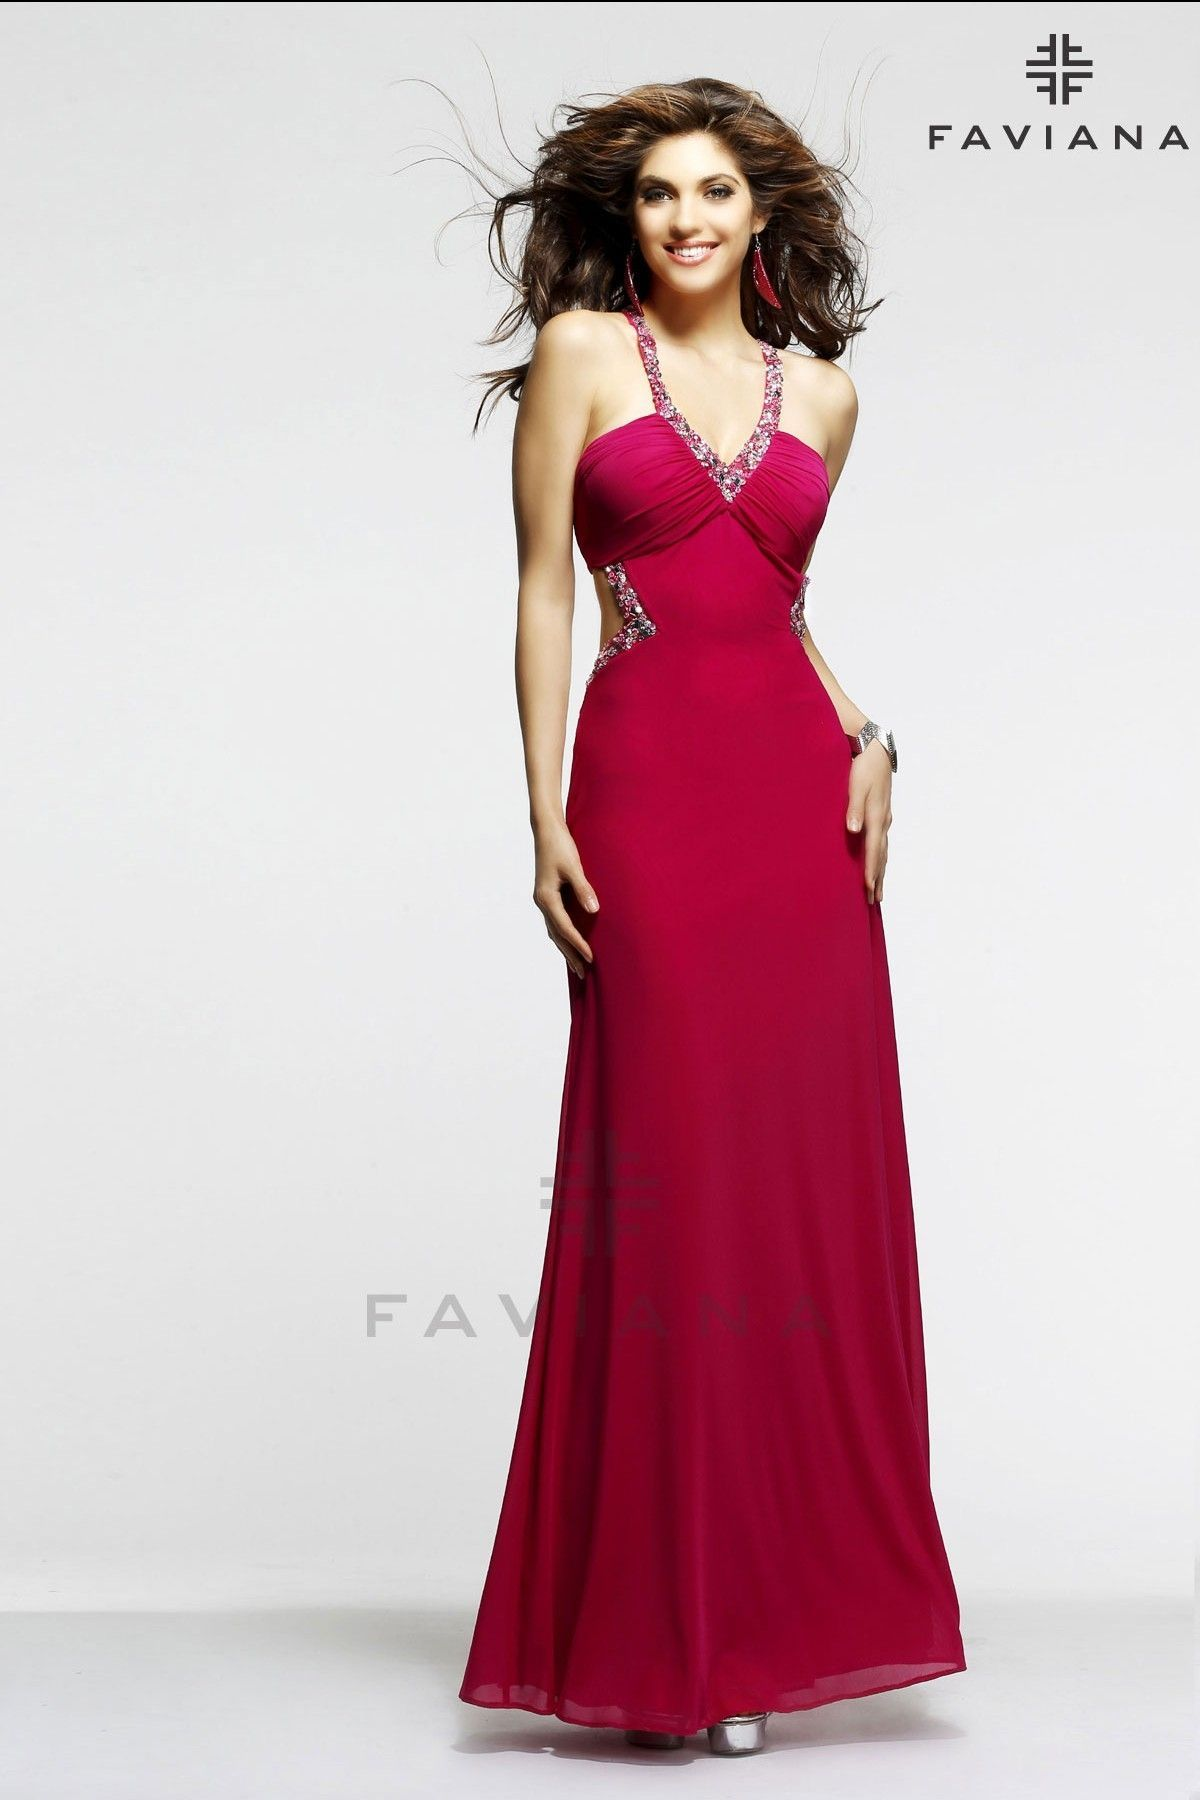 7cc5a1dd1650 7348 Raspberry Cut-Outs Off Price. SNEAK PEEK 2015  Faviana collection   sassyboutique Red Formal Dresses ...